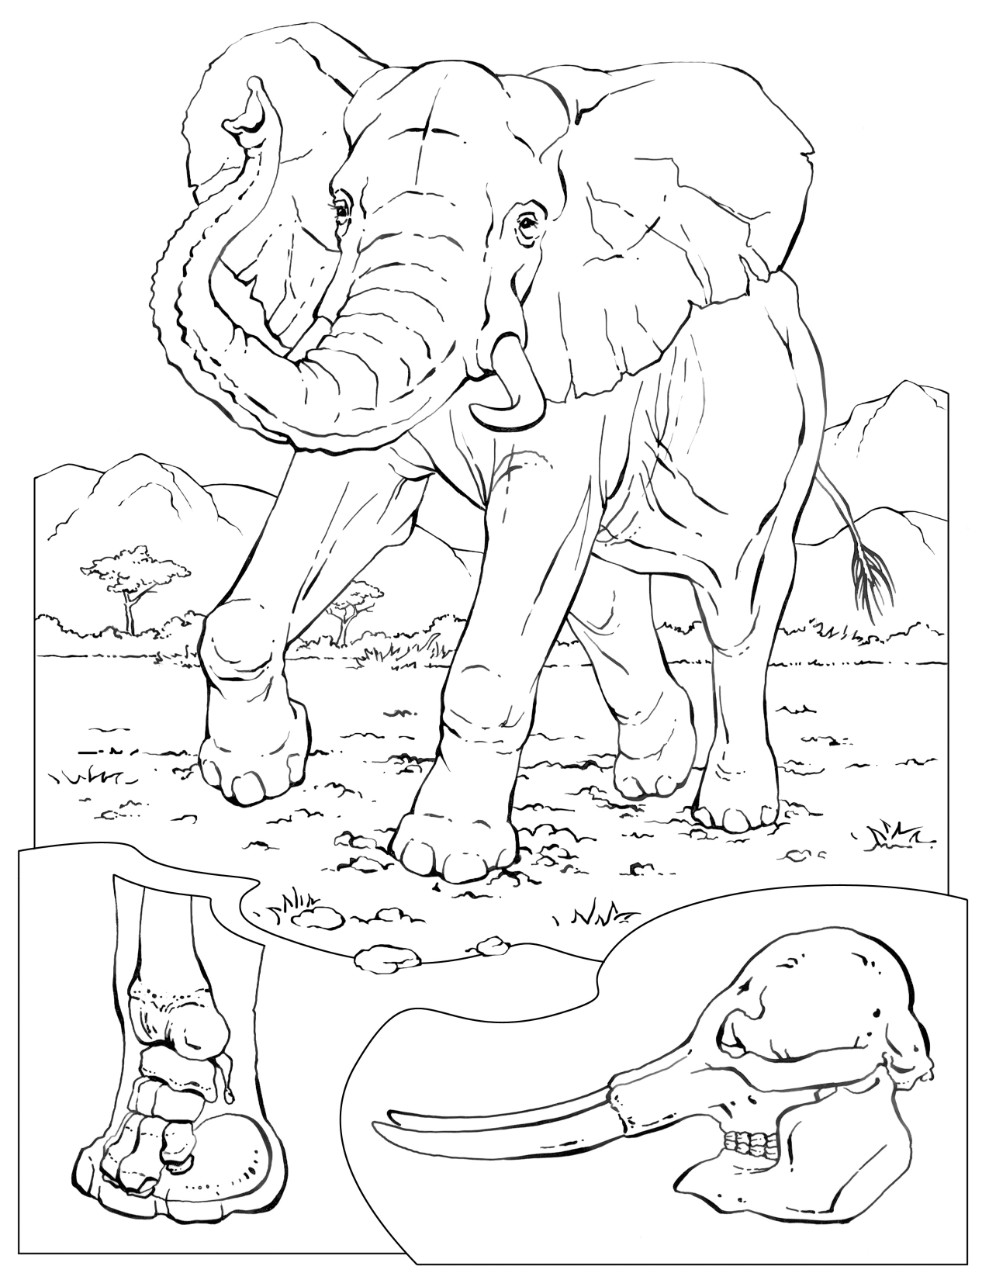 national geographic kids coloring pages mcdonalds happy meal coloring page and activities sheet national coloring geographic pages kids